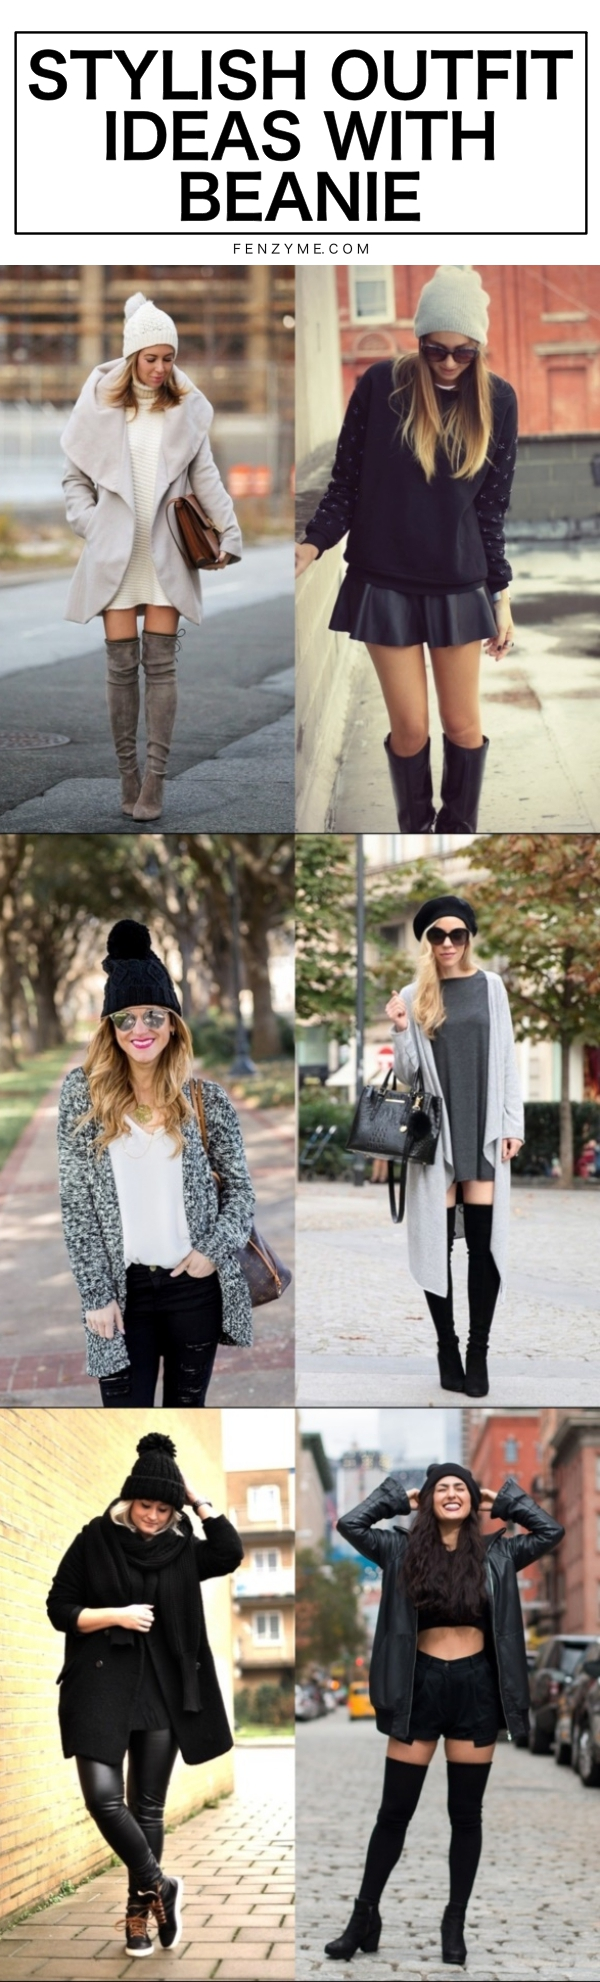 Stylish Outfit Ideas with Beanie